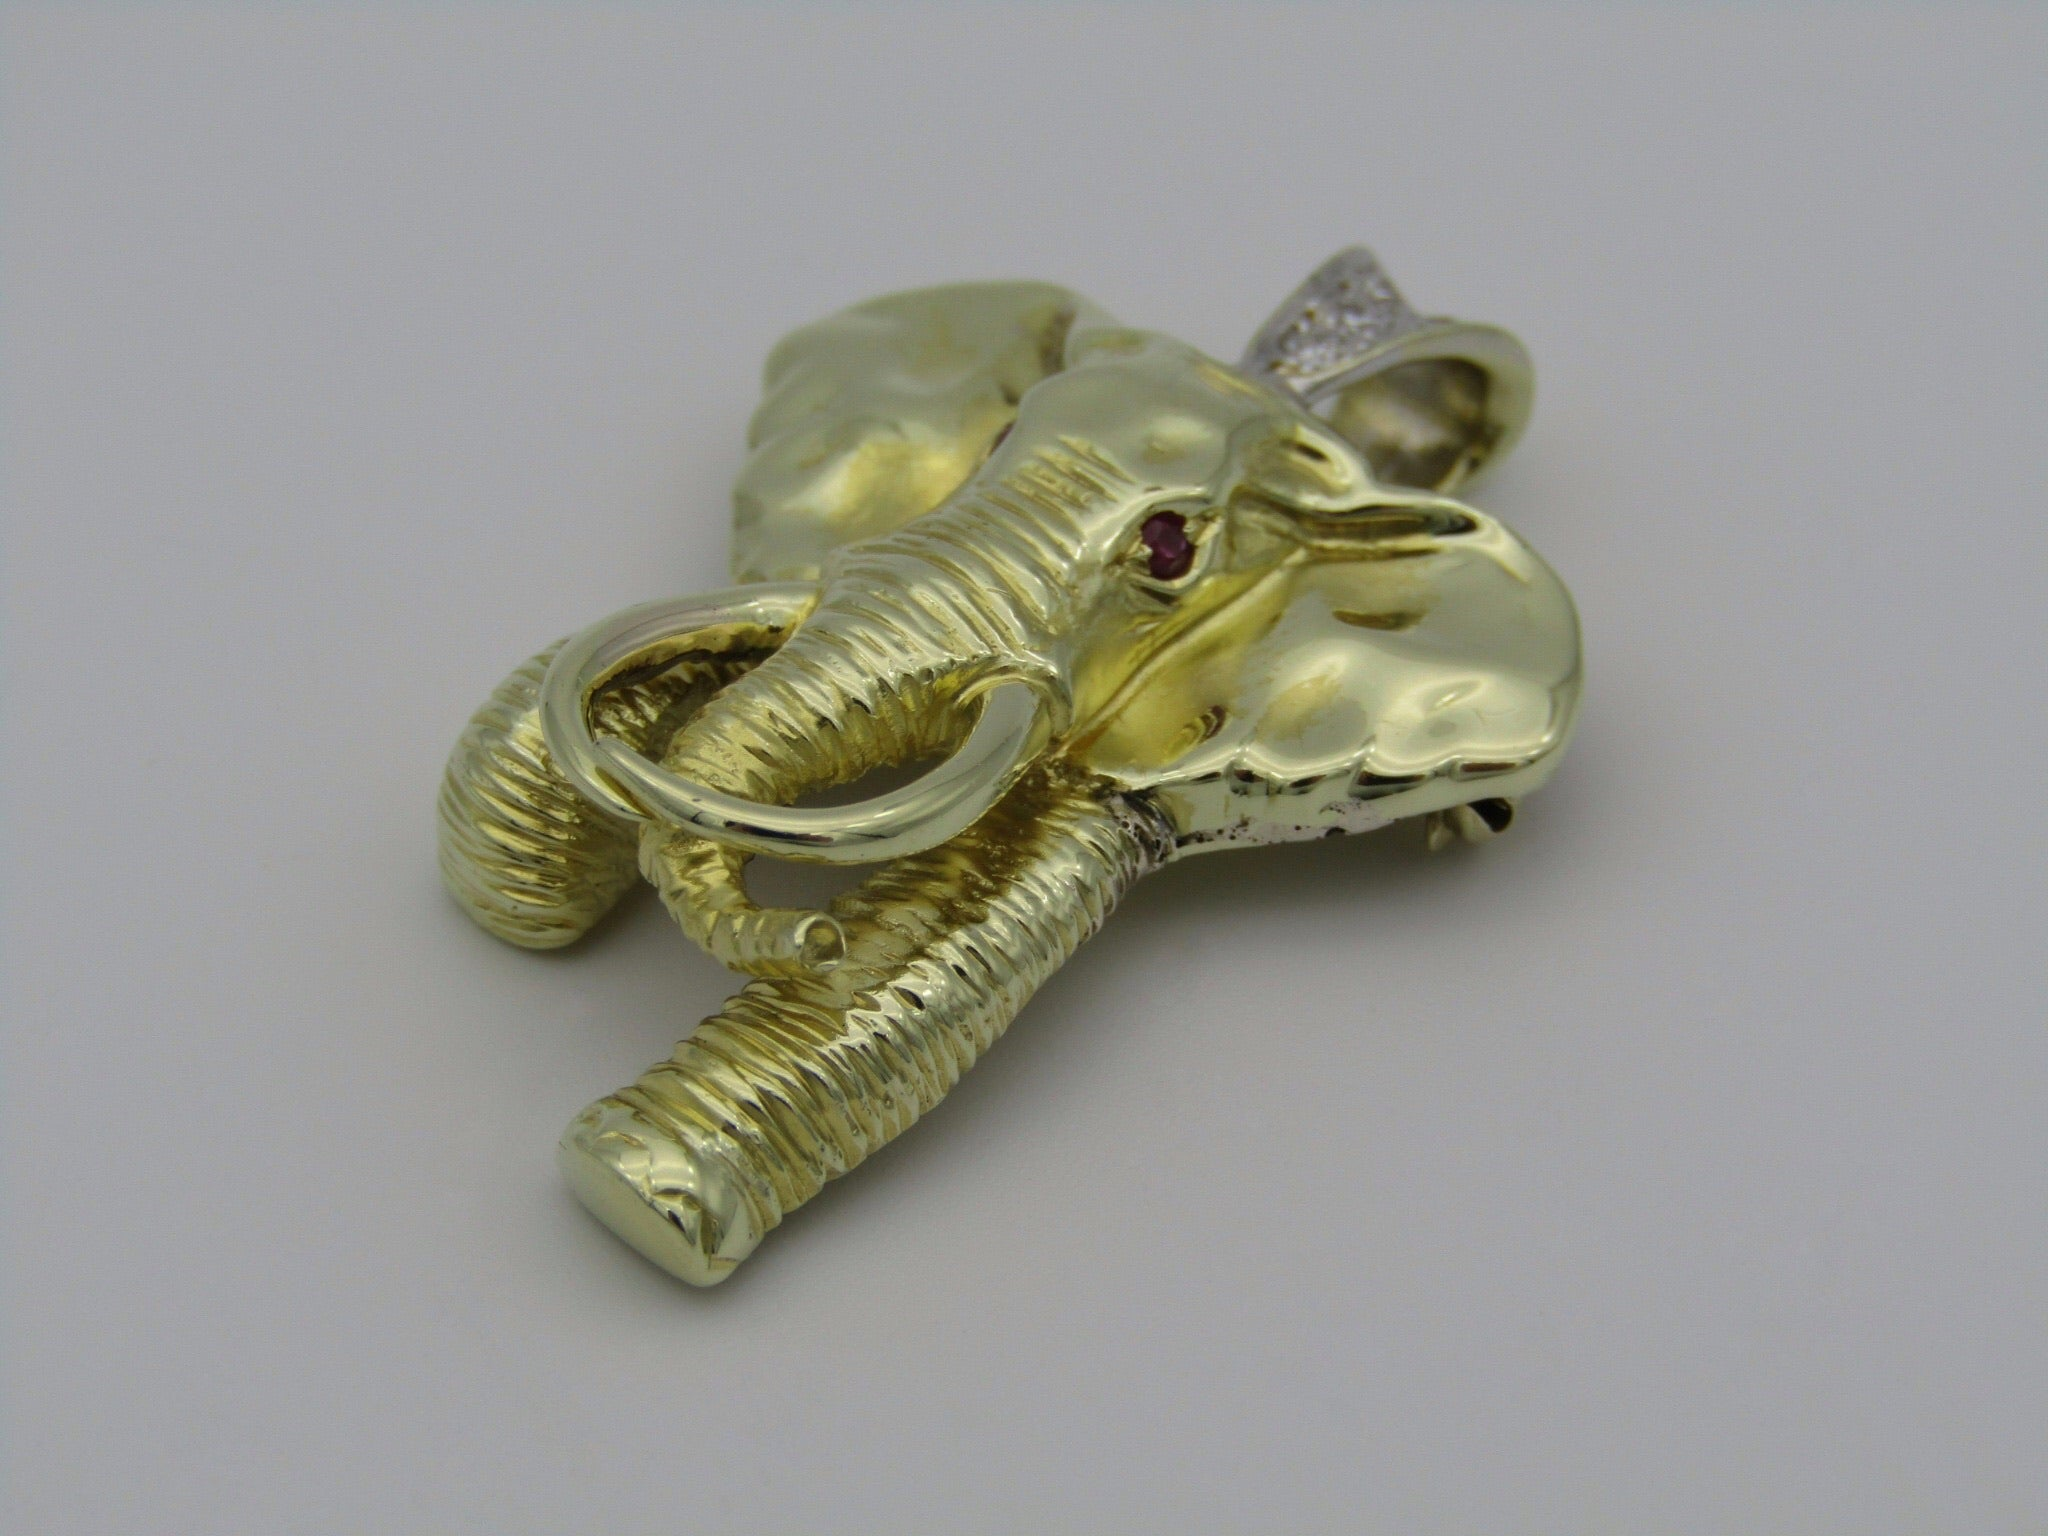 14kt gold diamond Elephant pendant and brooch.